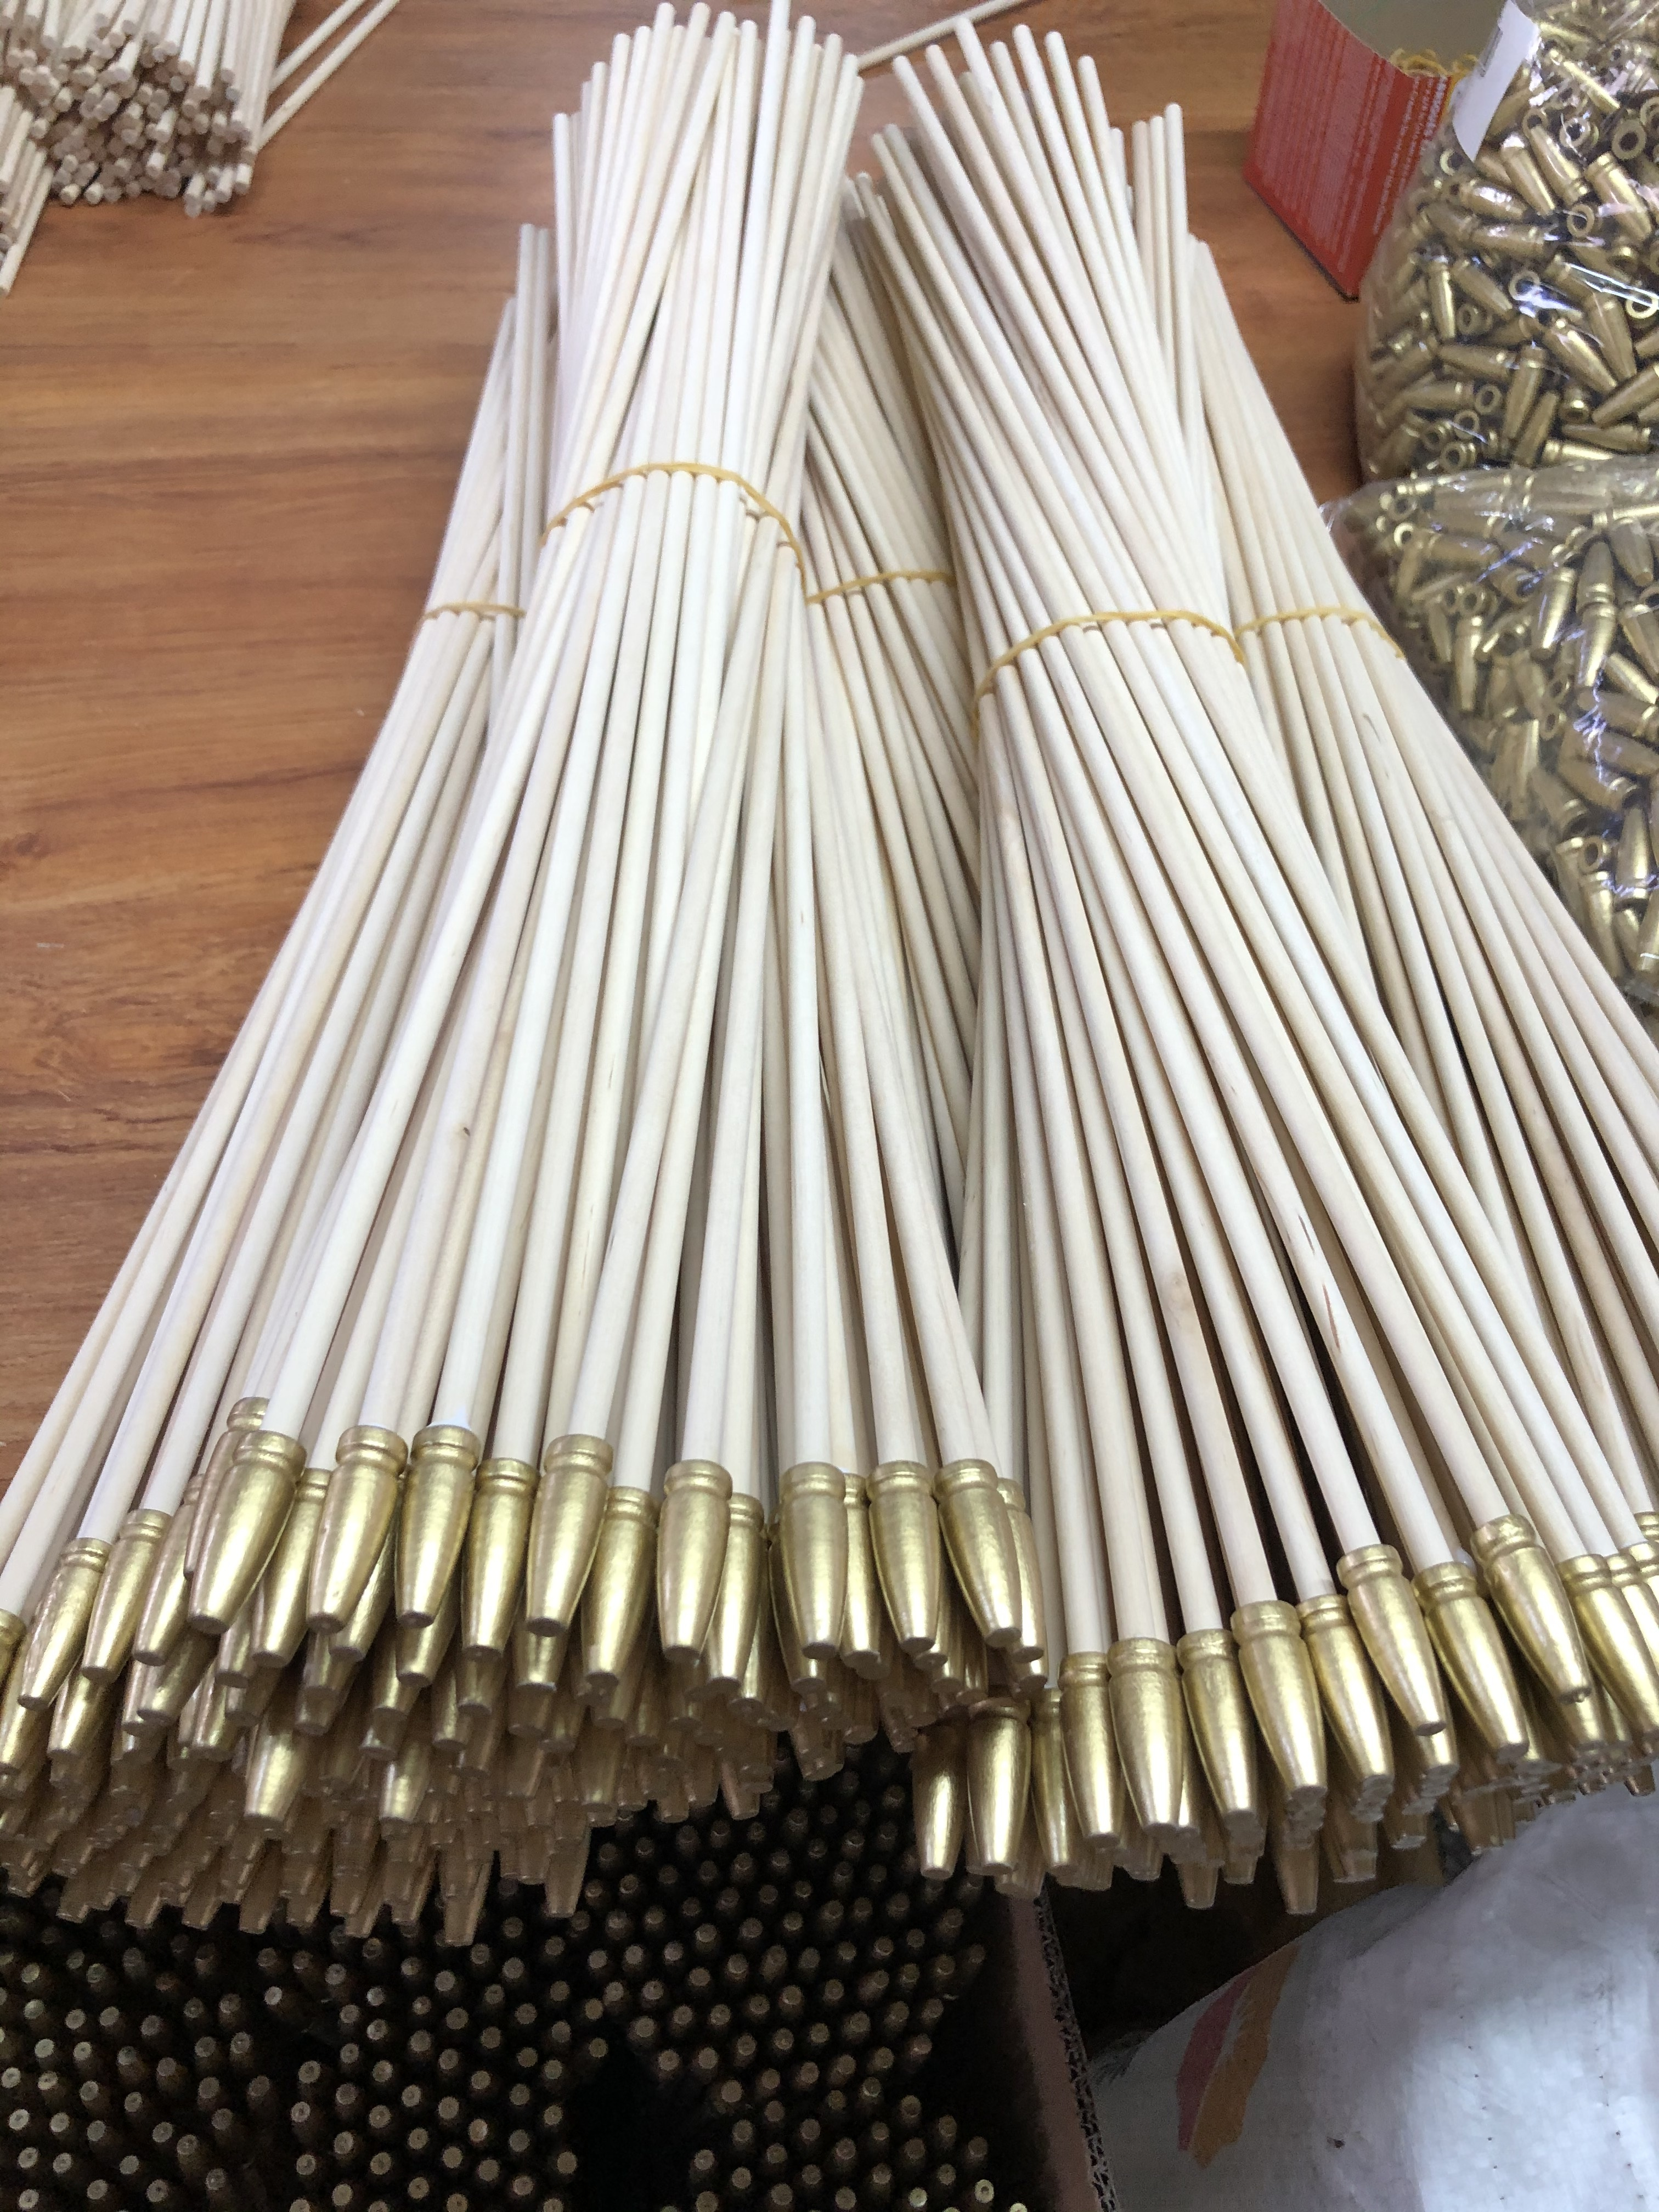 Wooden flag pole,wooden sticks,flag stick,direct factory,exporting Walmart.